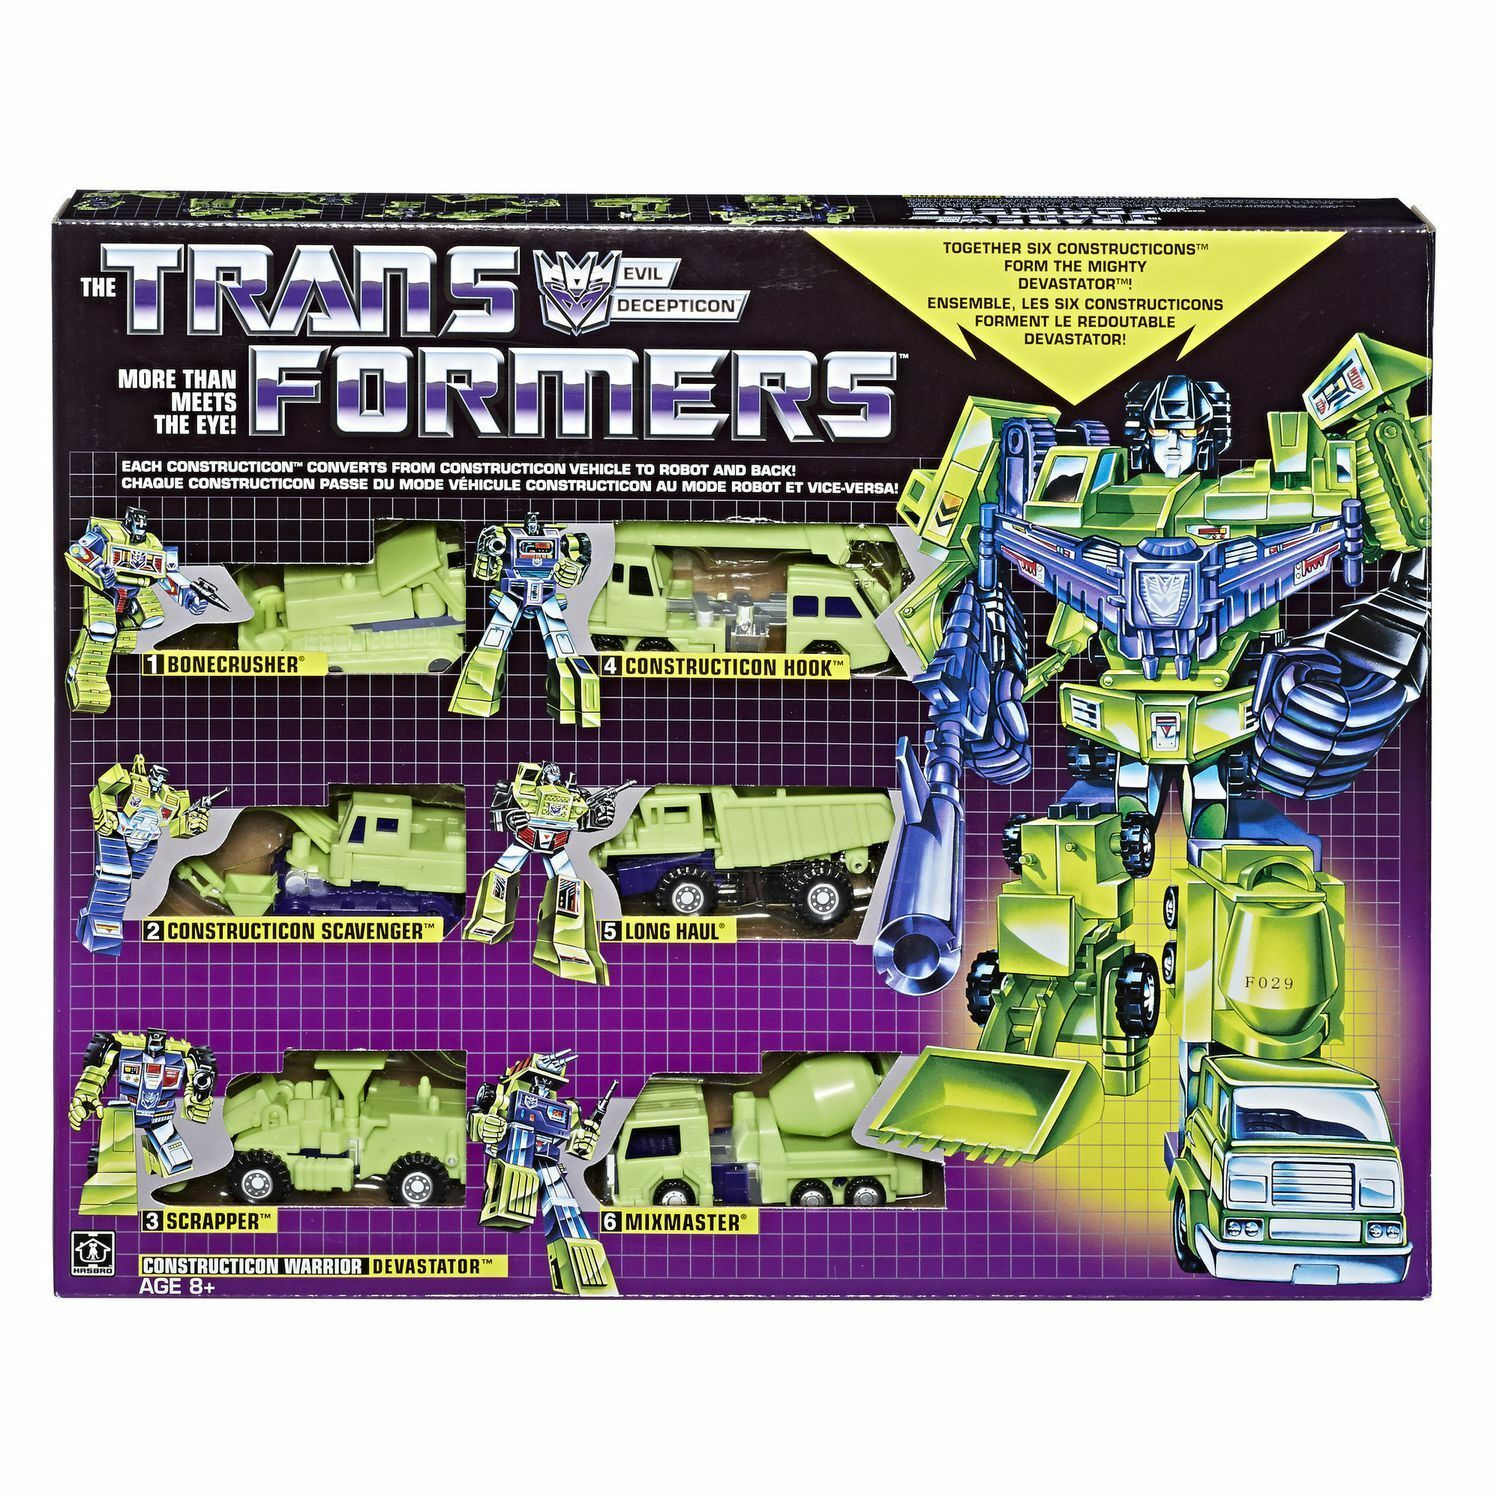 Transformers G1 Devastator Devastator Devastator reissue 2018 Walmart Exclusive Bre nuovo Sealed  739af6